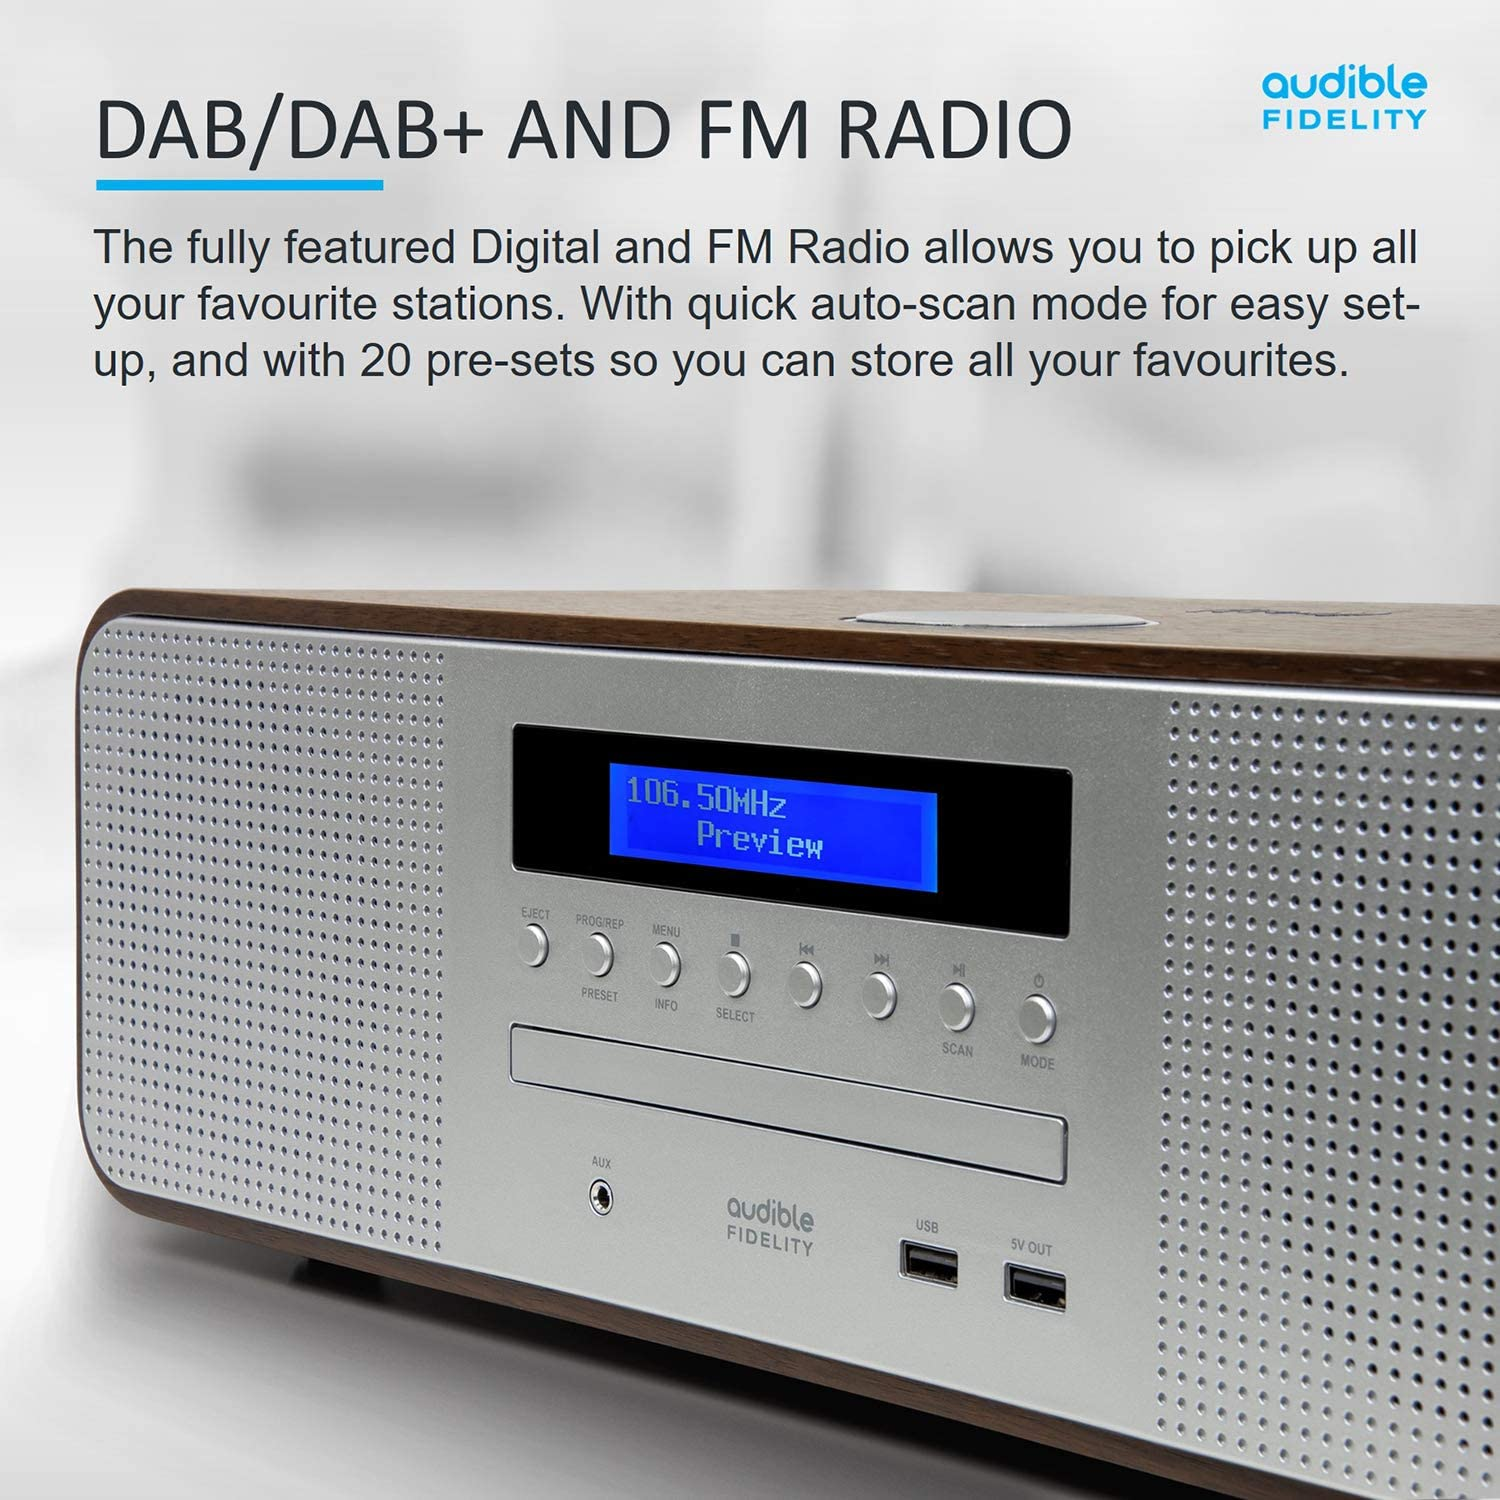 AUDIBLE FIDELITY Complete Hi-Fi DAB//DAB+ Stereo System CD Player With Speakers FM /& Digital Radio with Remote Control Wireless Charging /& USB Charging MP3 Playback Bluetooth